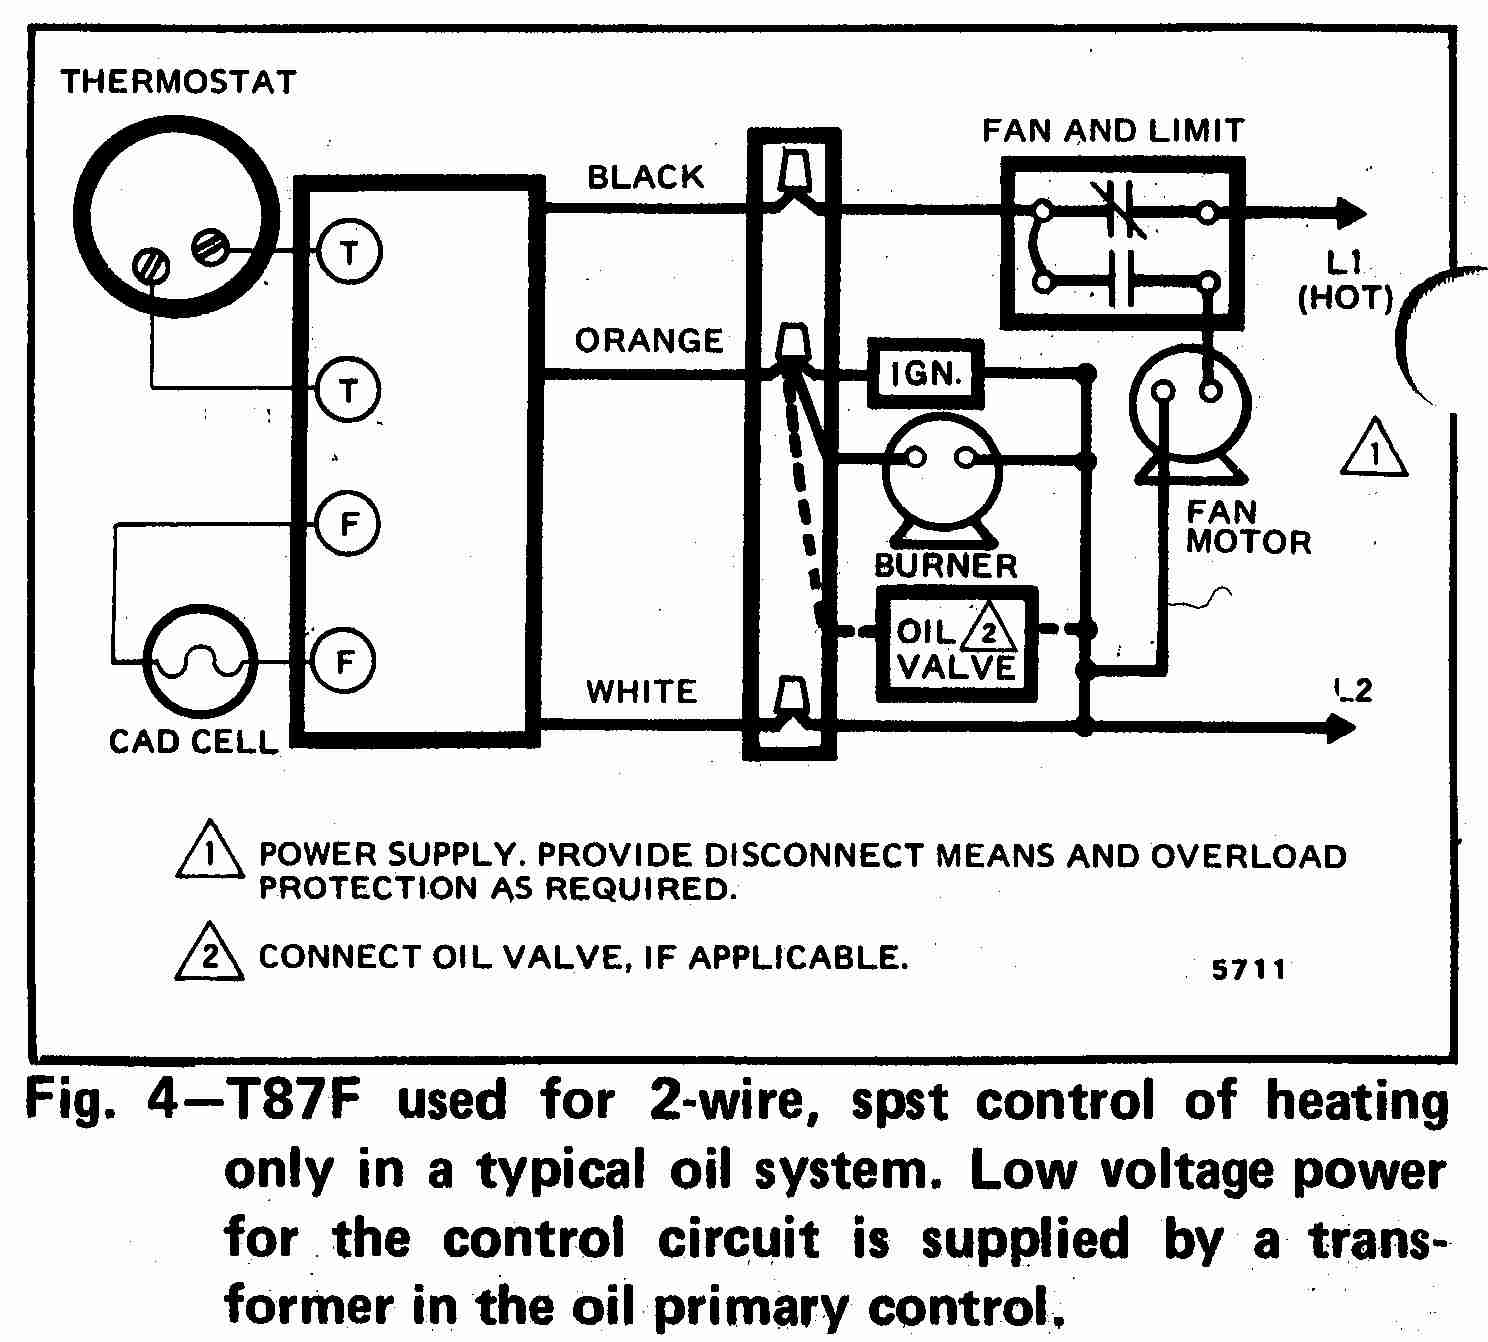 Wiring diagrams hvac systems wiring diagrams schematics room thermostat wiring diagrams for hvac systems honeywell t87f thermostat wiring diagram for 2 wire spst control of heating only in room thermostat wiring swarovskicordoba Images